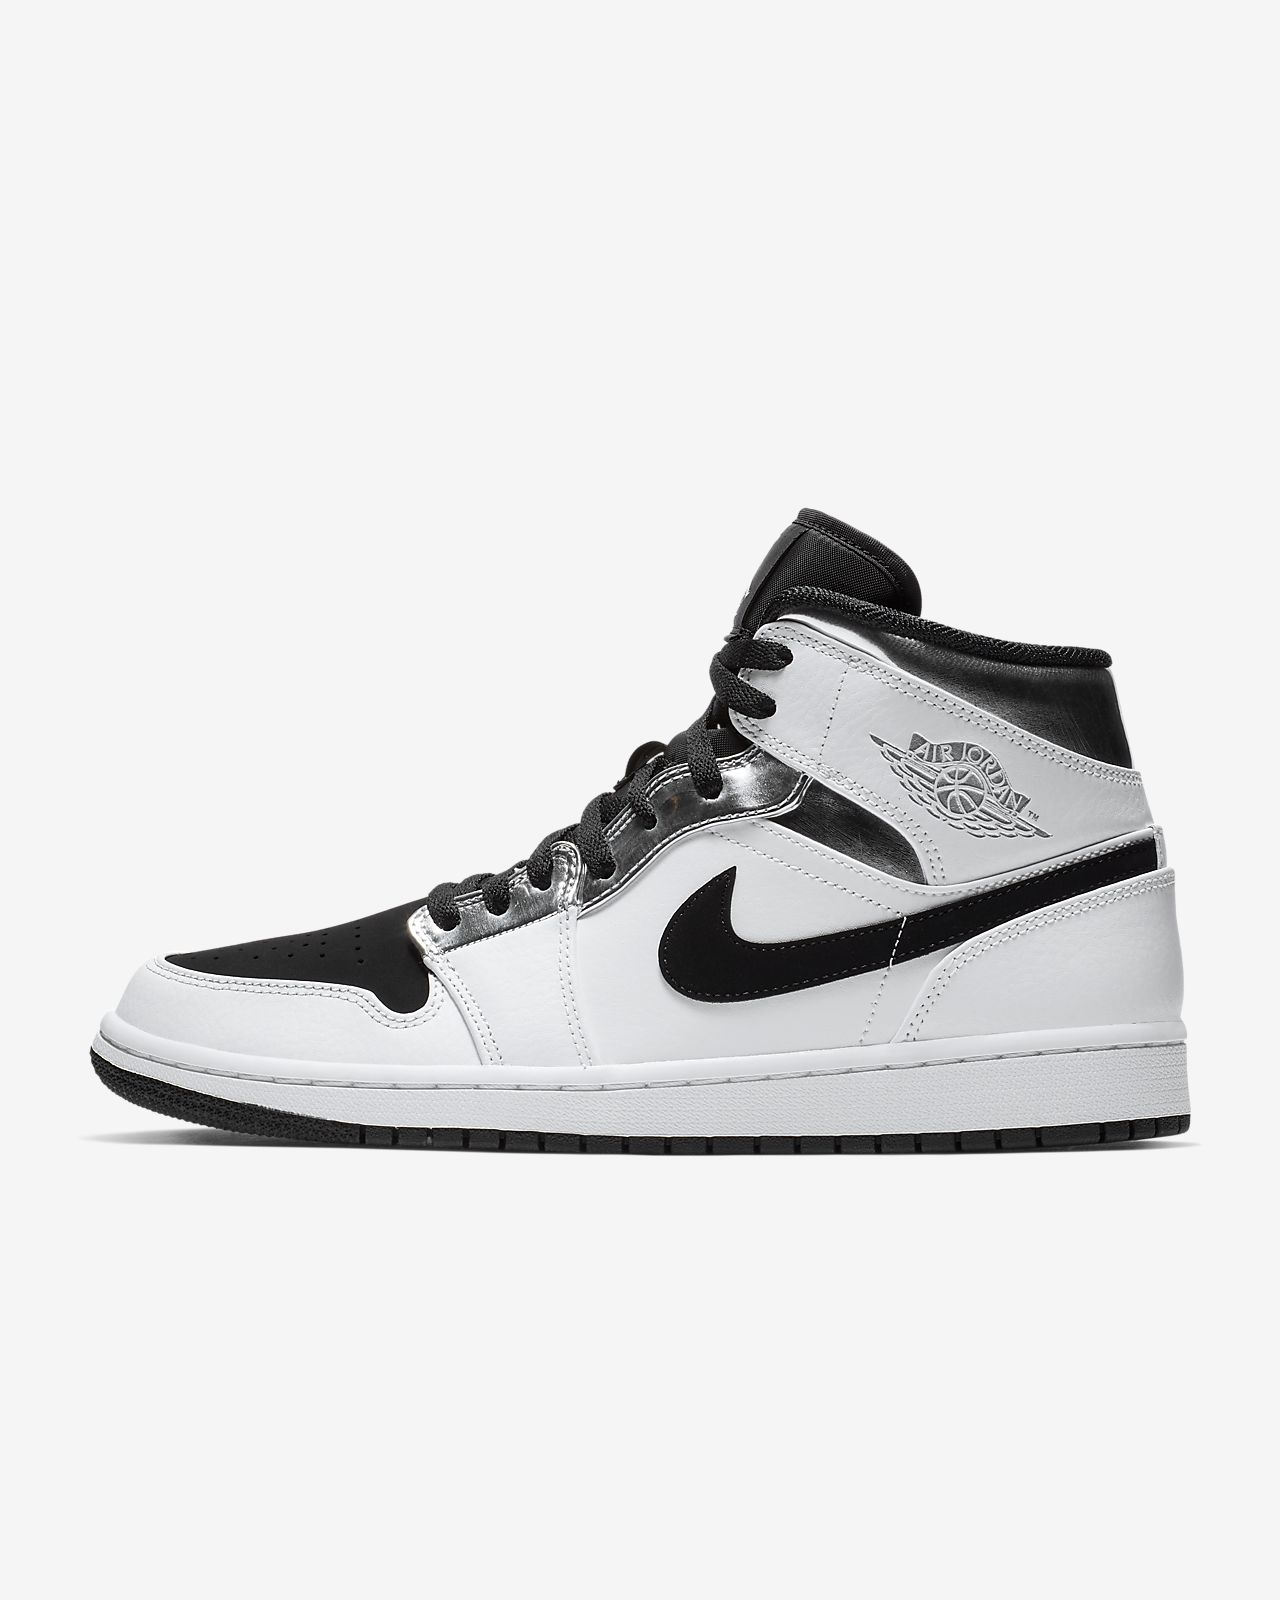 b5a0d3f296bde6 Air Jordan 1 Mid Men s Shoe. Nike.com